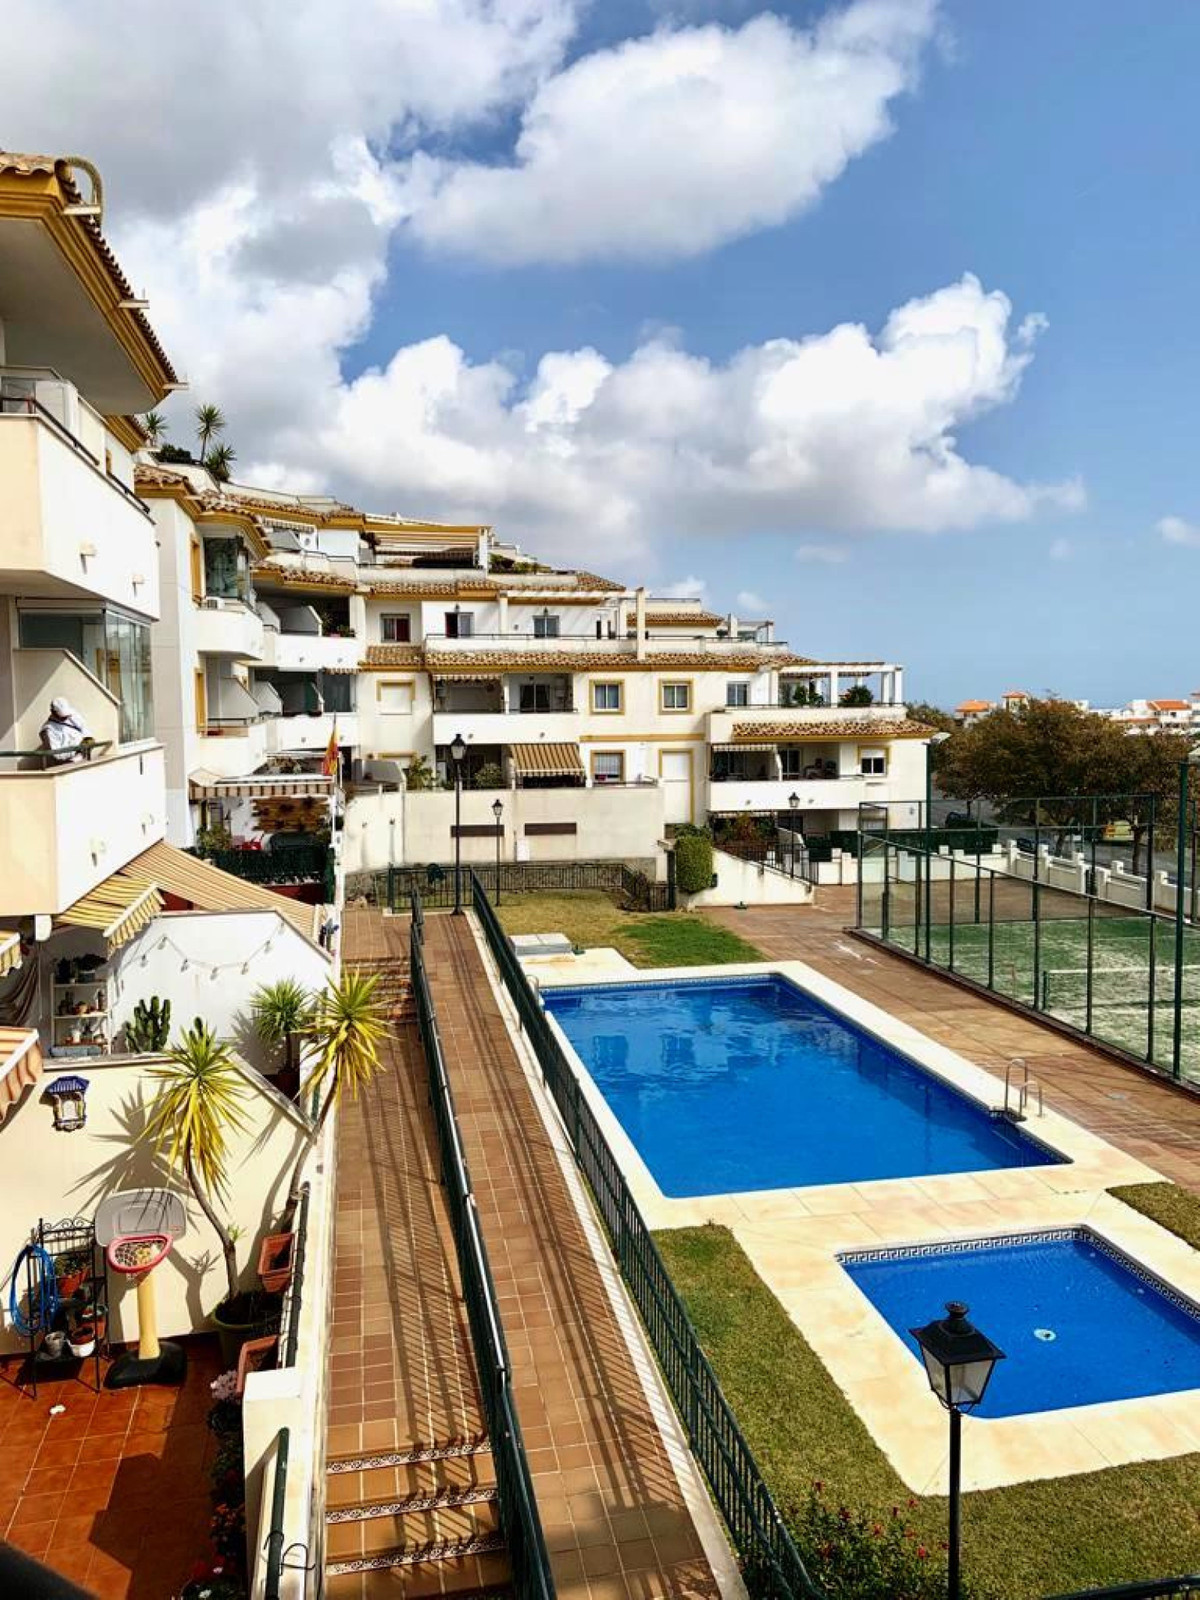 3 bedroom apartment in Benalmadena Pueblo. Very spacious and bright apartment in one of the most pop, Spain